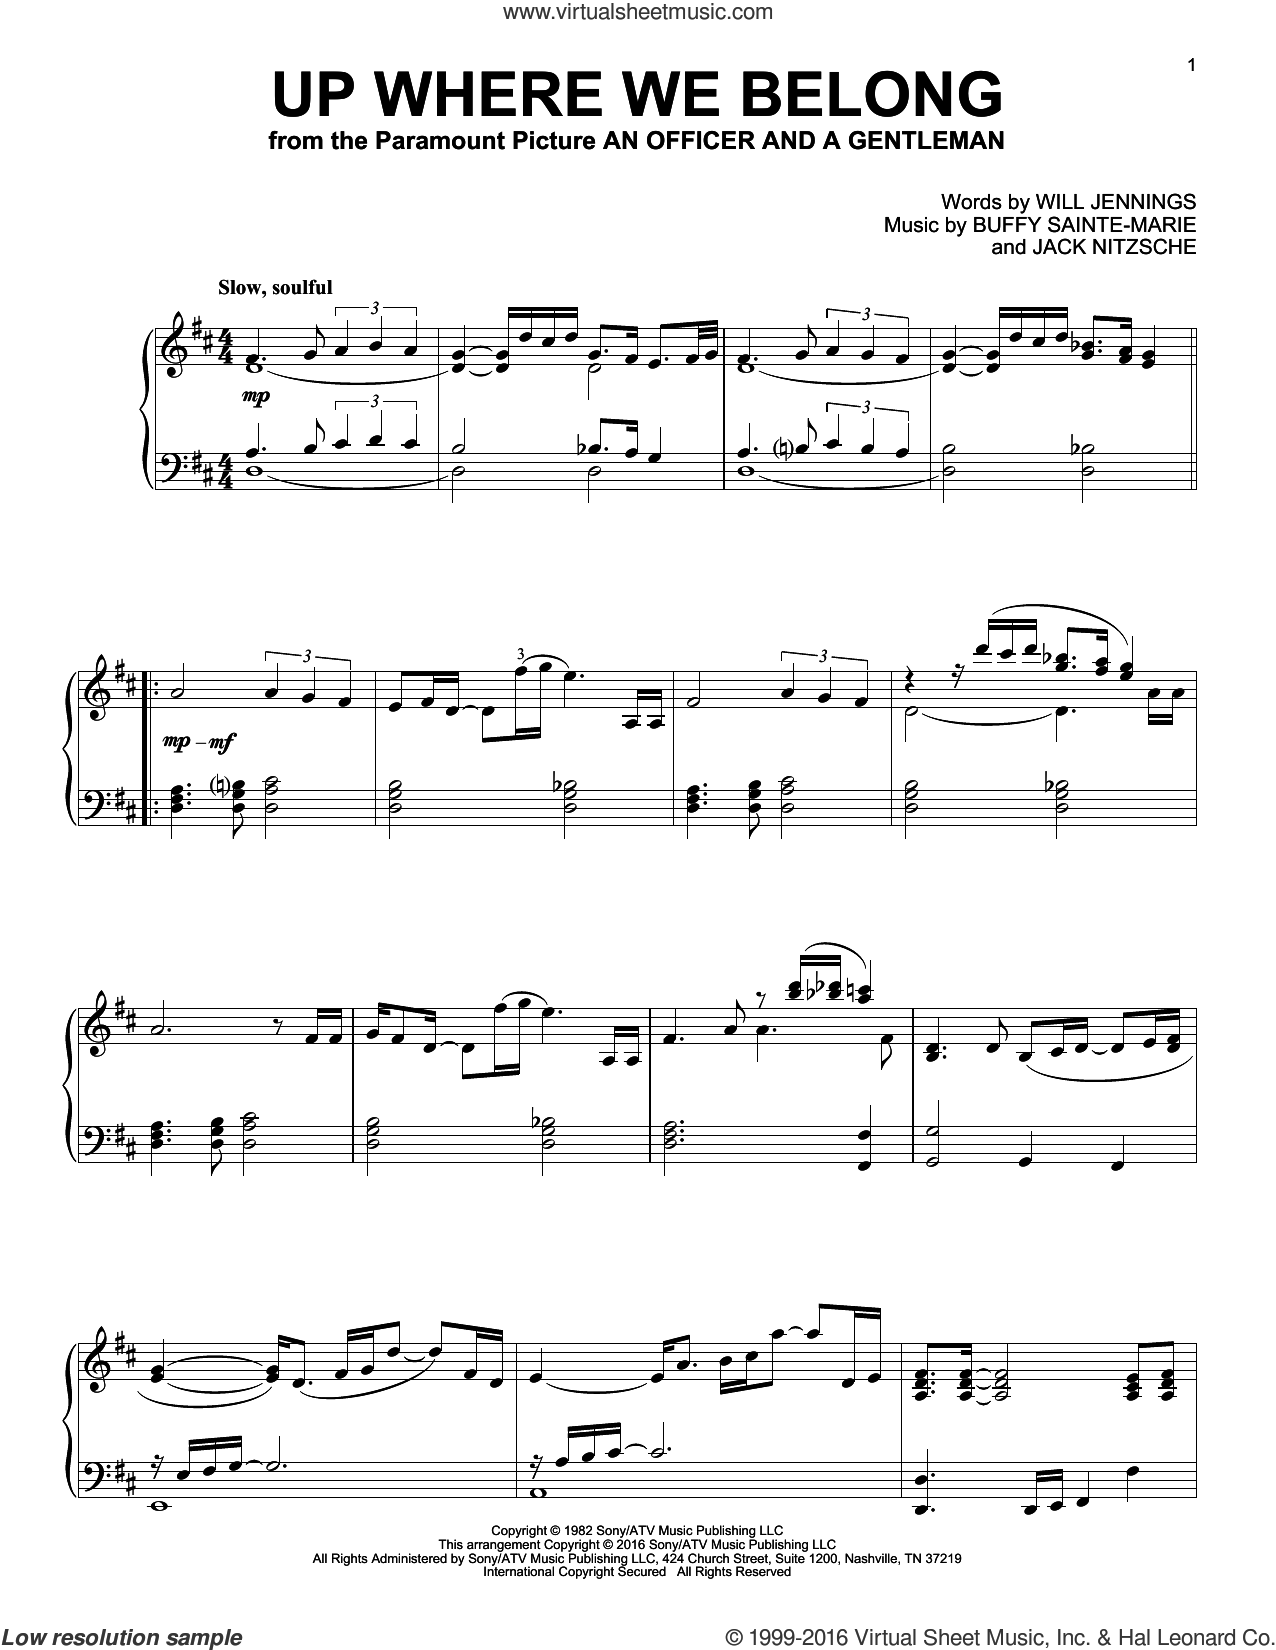 Up Where We Belong sheet music for piano solo by Joe Cocker & Jennifer Warnes, BeBe and CeCe Winans, Buffy Sainte-Marie, Jack Nitzche and Will Jennings, intermediate skill level